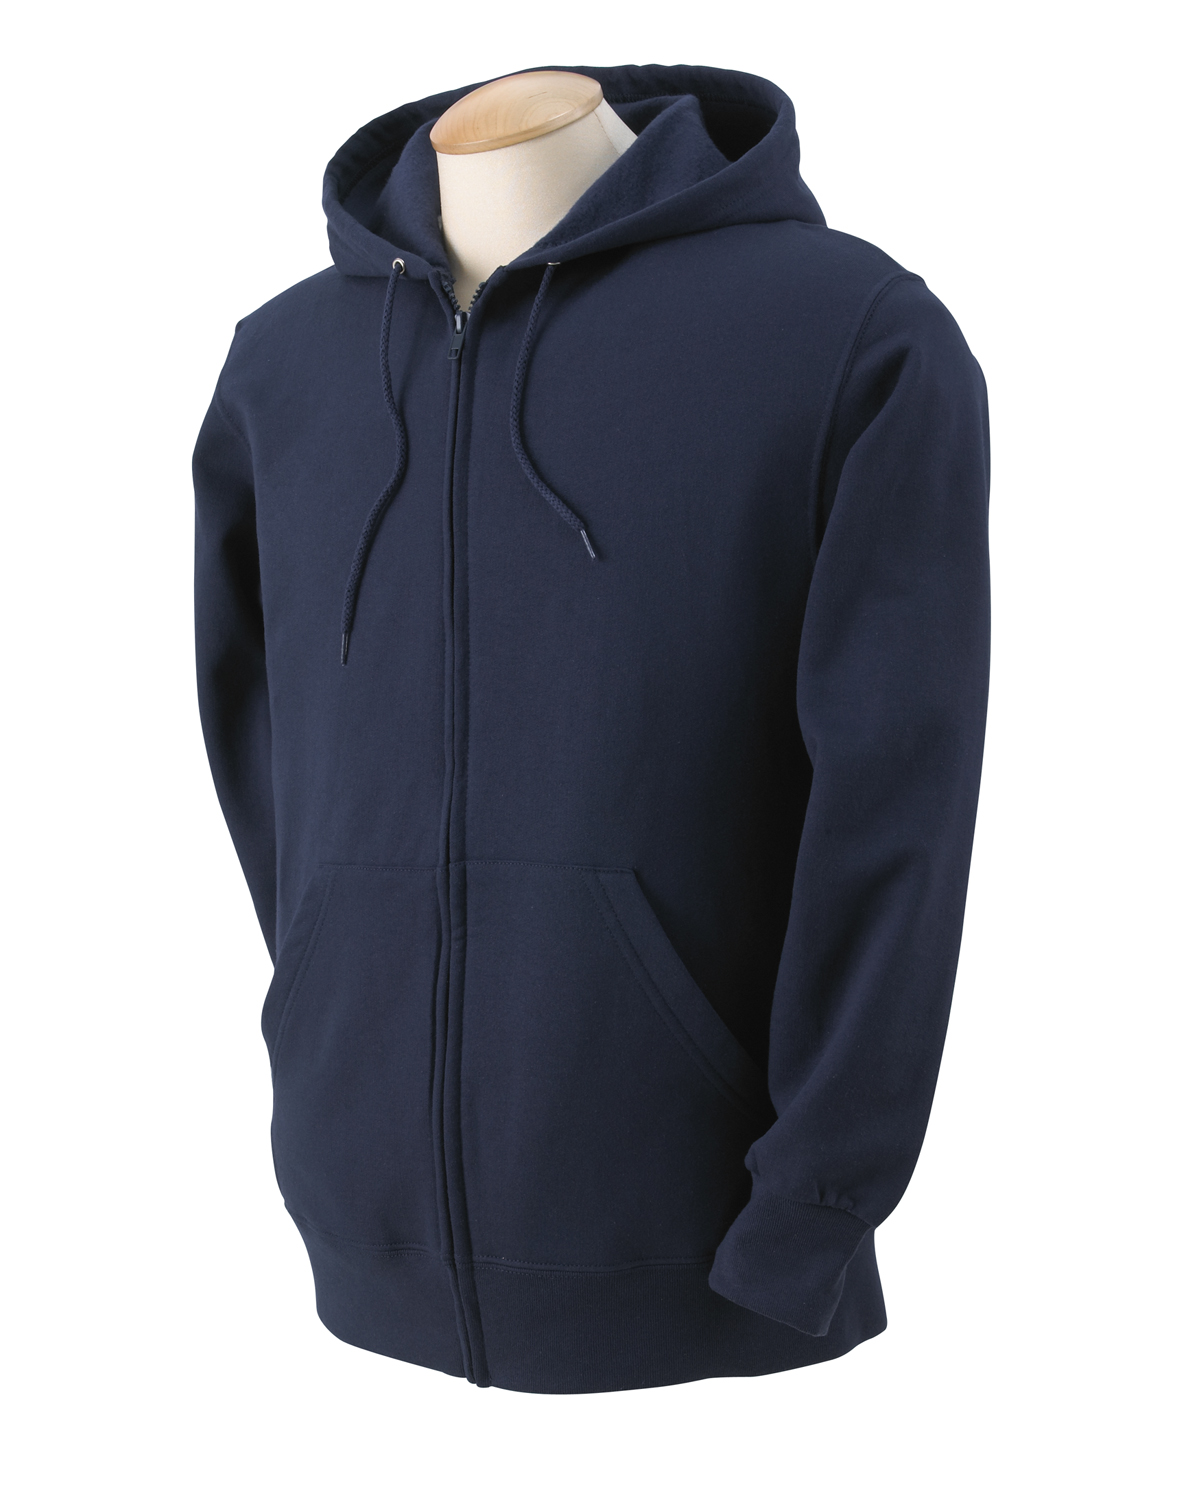 Fruit of the Loom Super Heavyweight 12 oz. Full-Zip ...